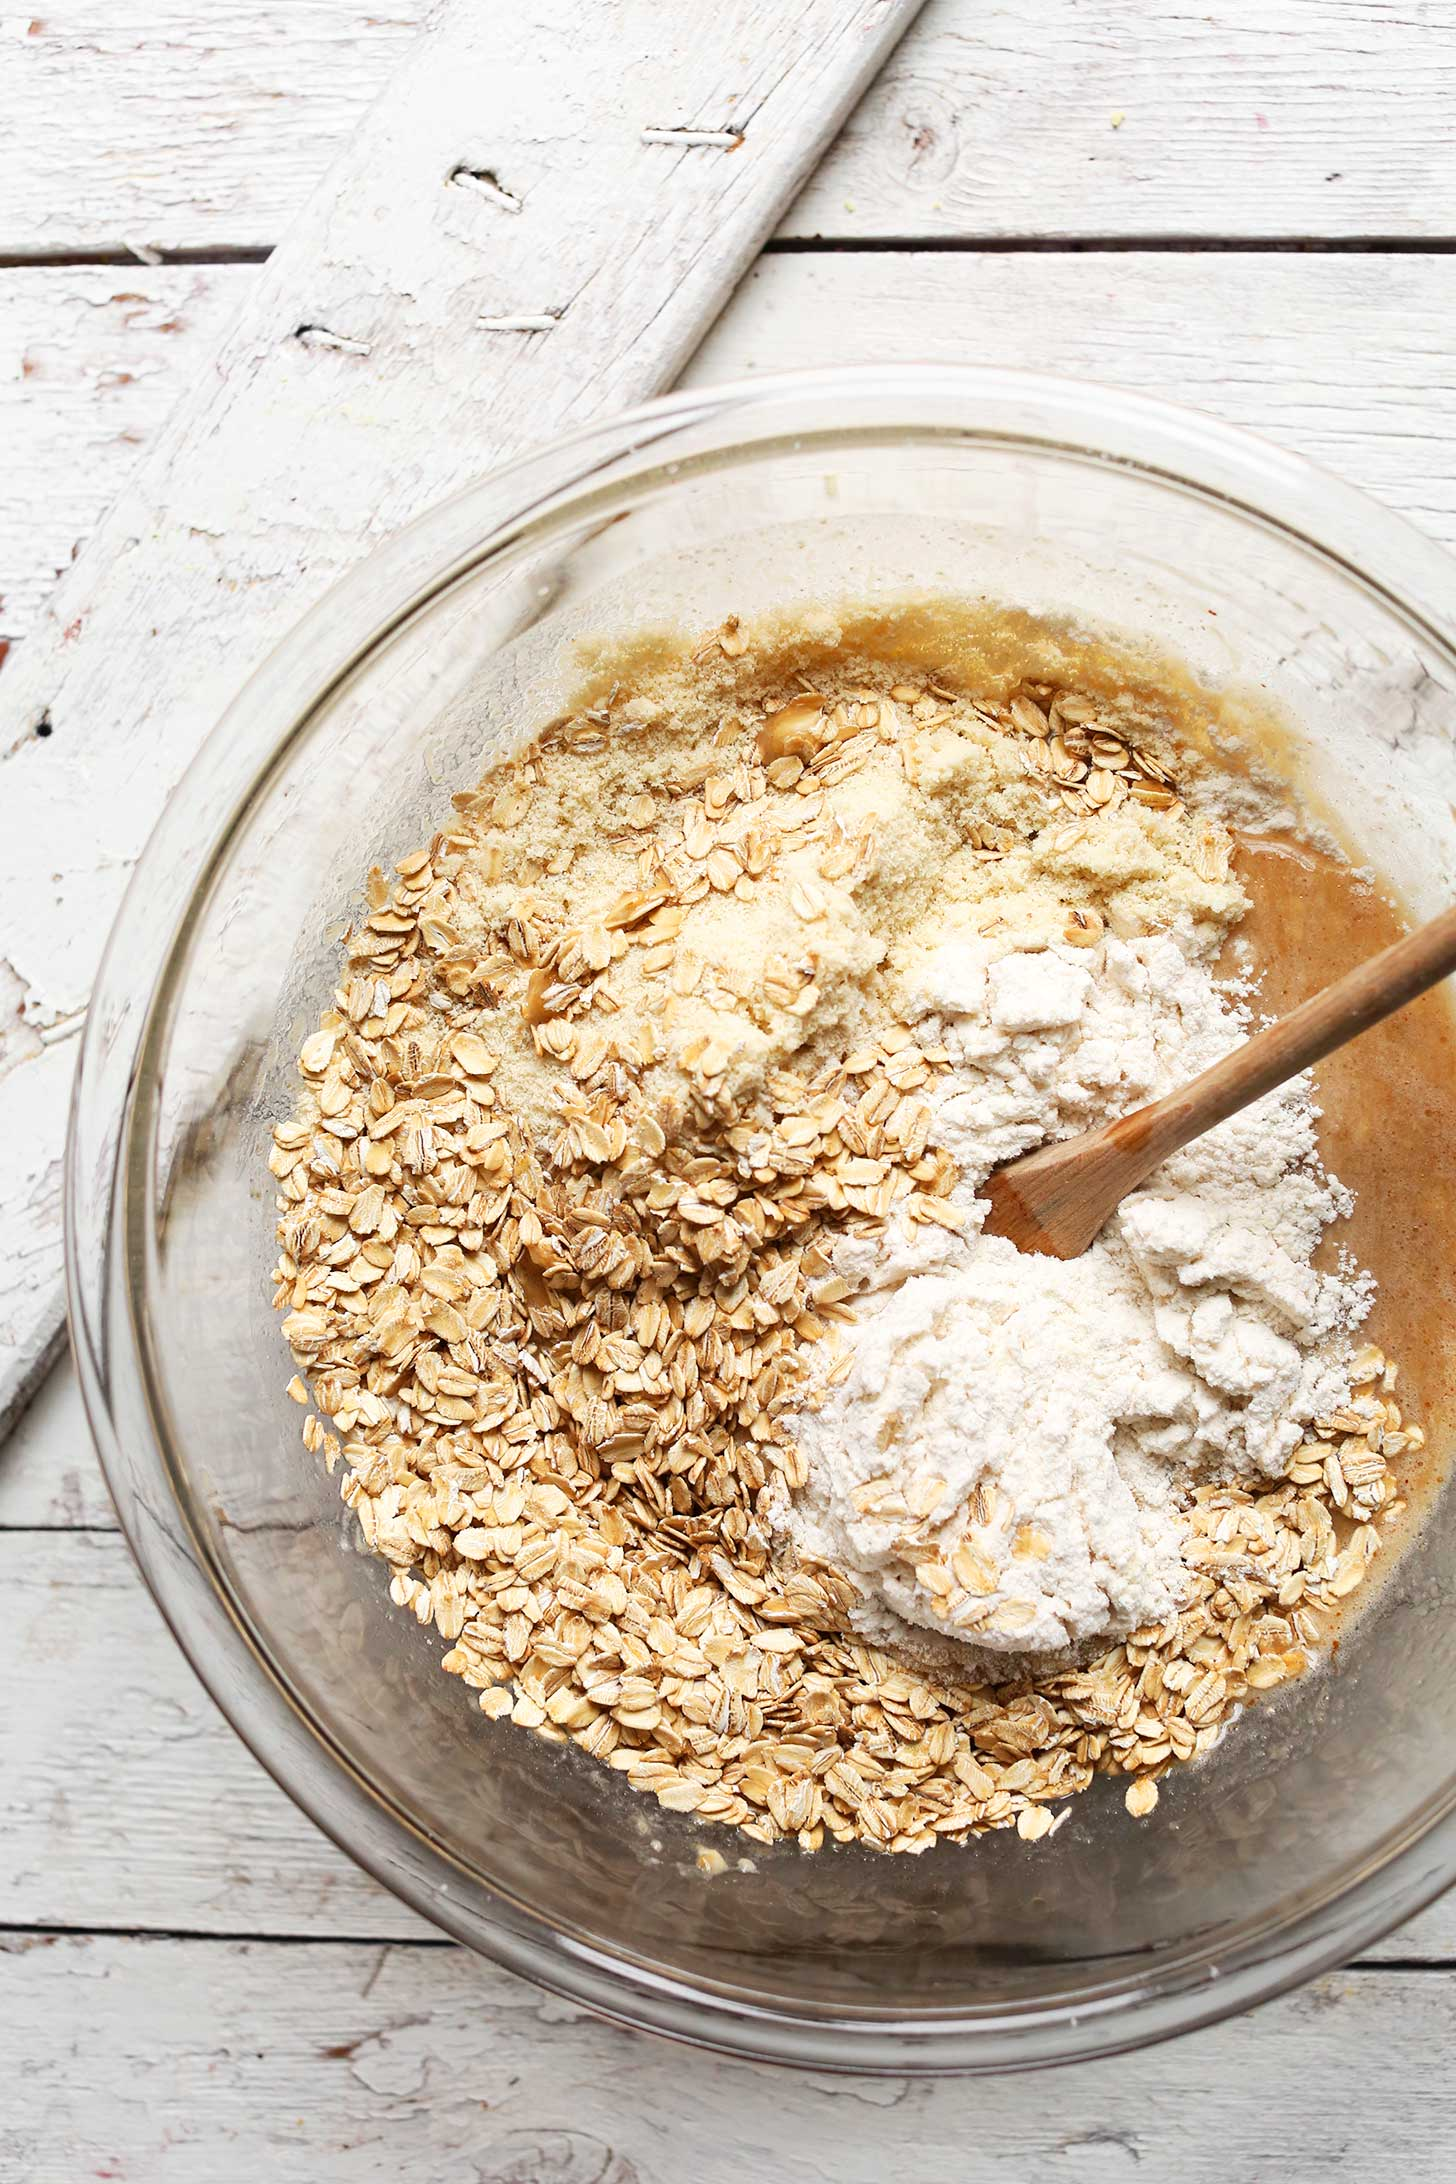 Adding oats and gluten-free flours to our Gluten-Free Banana Nut Muffins recipe